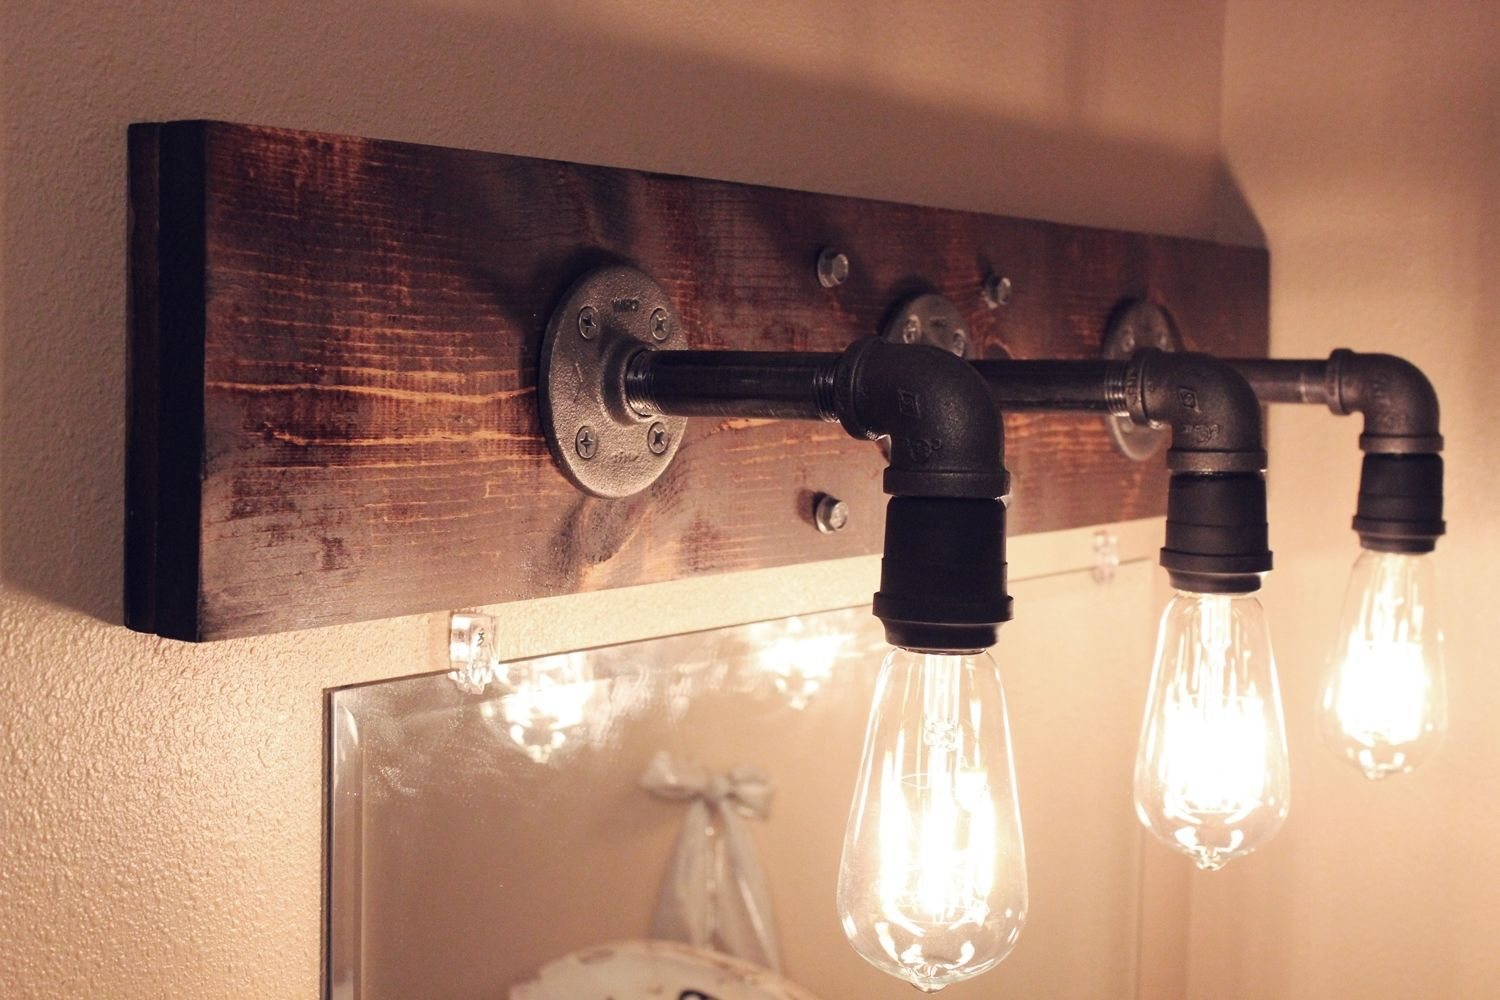 Bathroom Fittings Fixtures: DIY Industrial Bathroom Light Fixtures